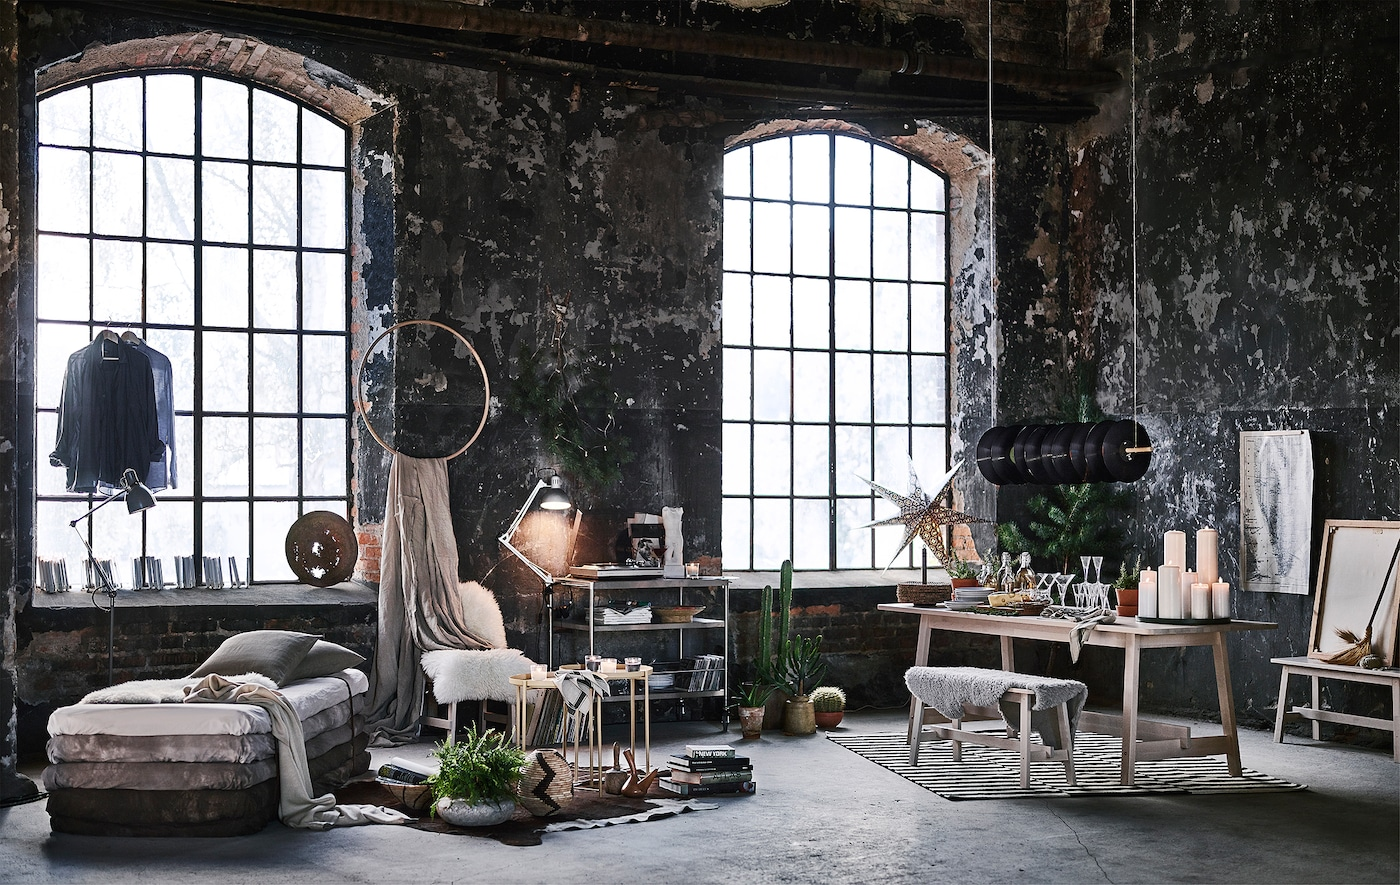 An industrial loft-style living room decorated for the holidays.